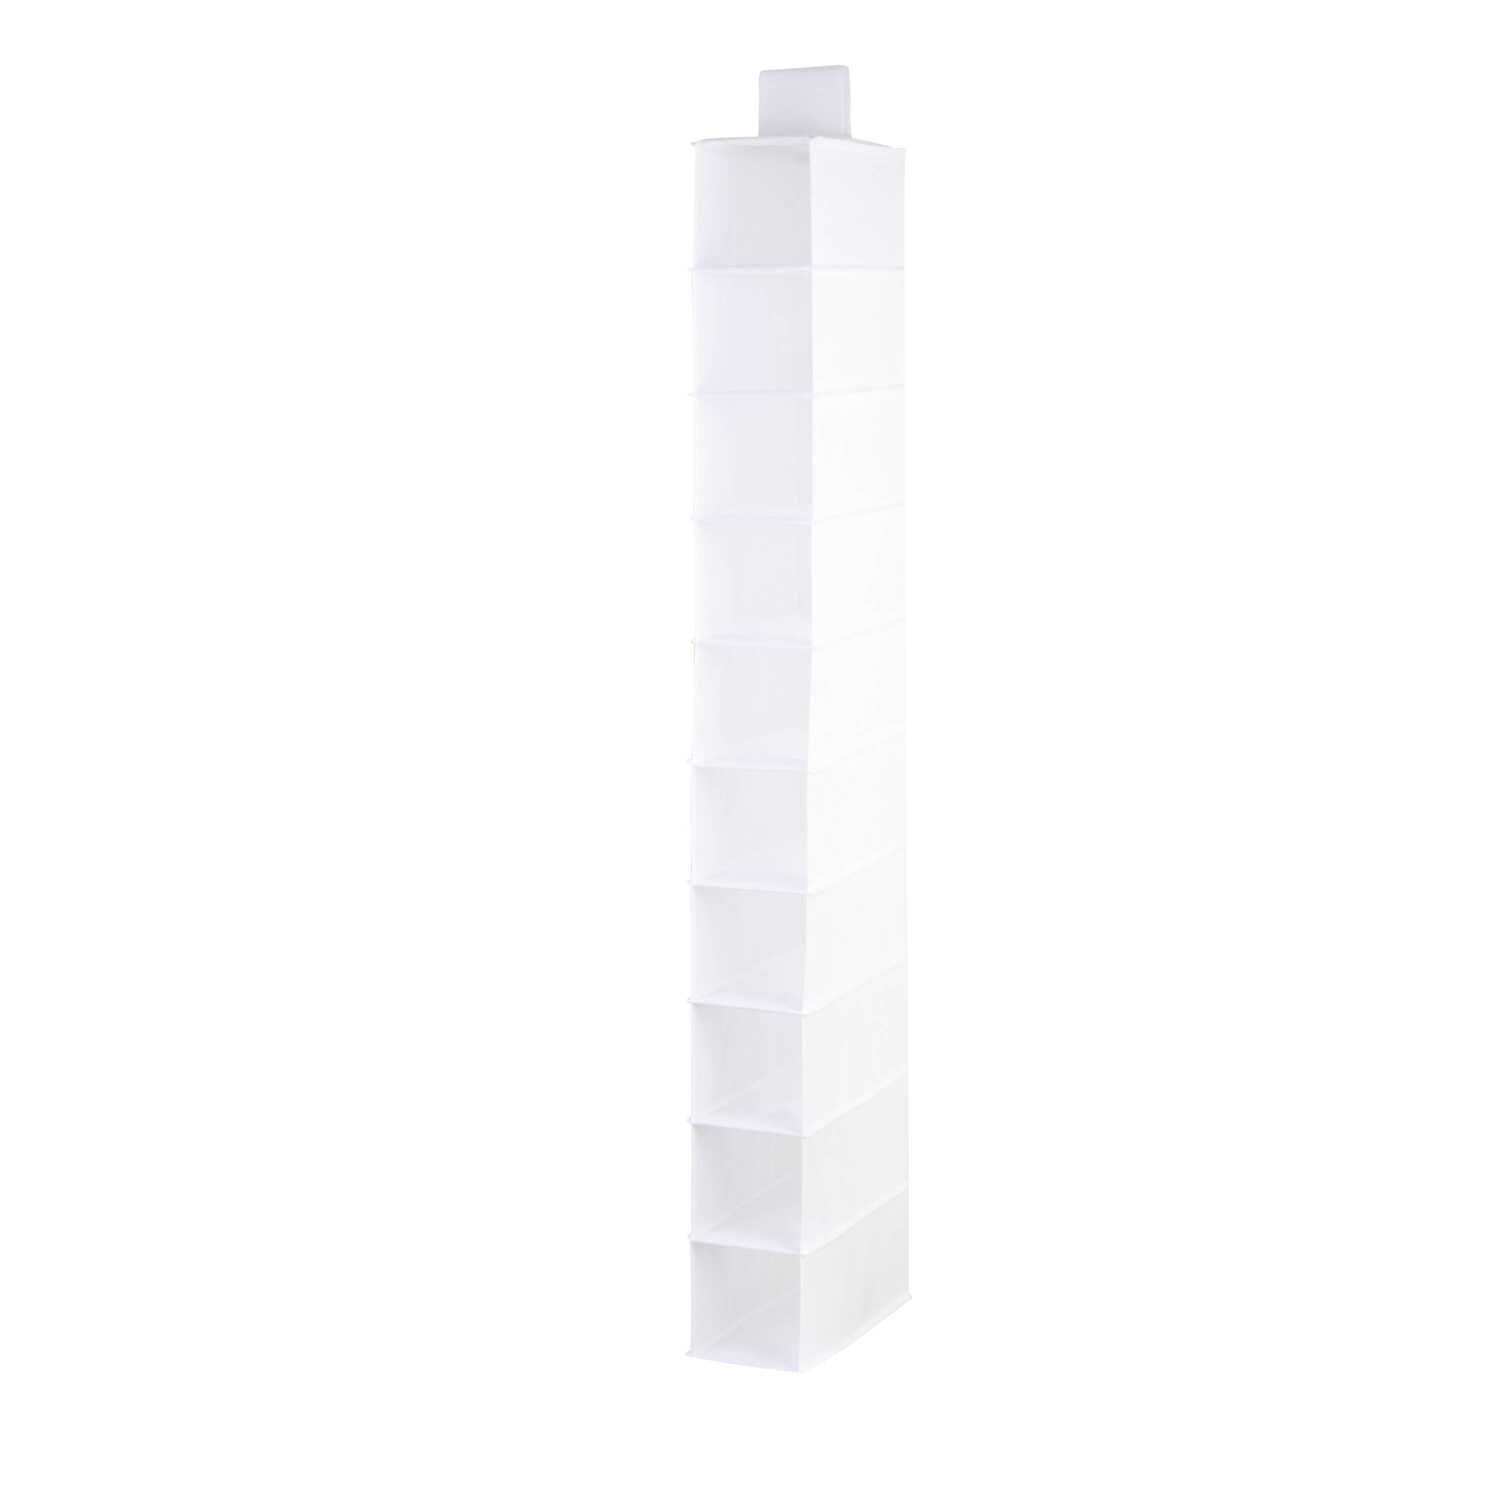 Honey Can Do  54 in. H x 12 in. W x 6 in. L Hanging Vertical Closet Organizer  1 pk Poly Cotton